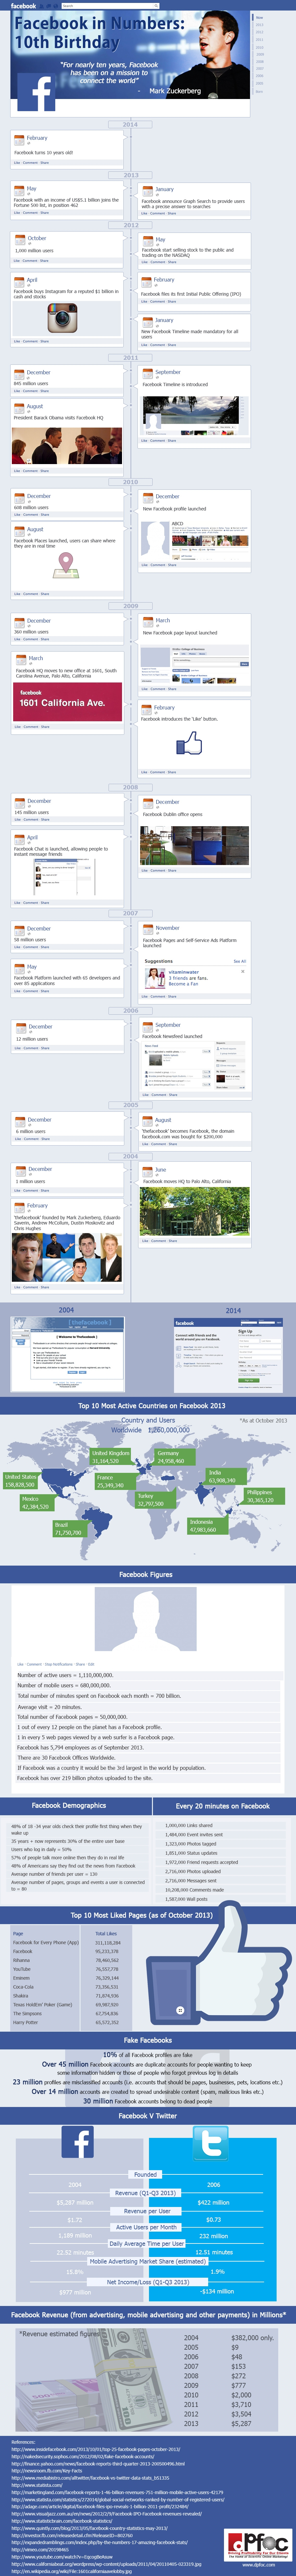 Facebook in numbers: 10th Birthday